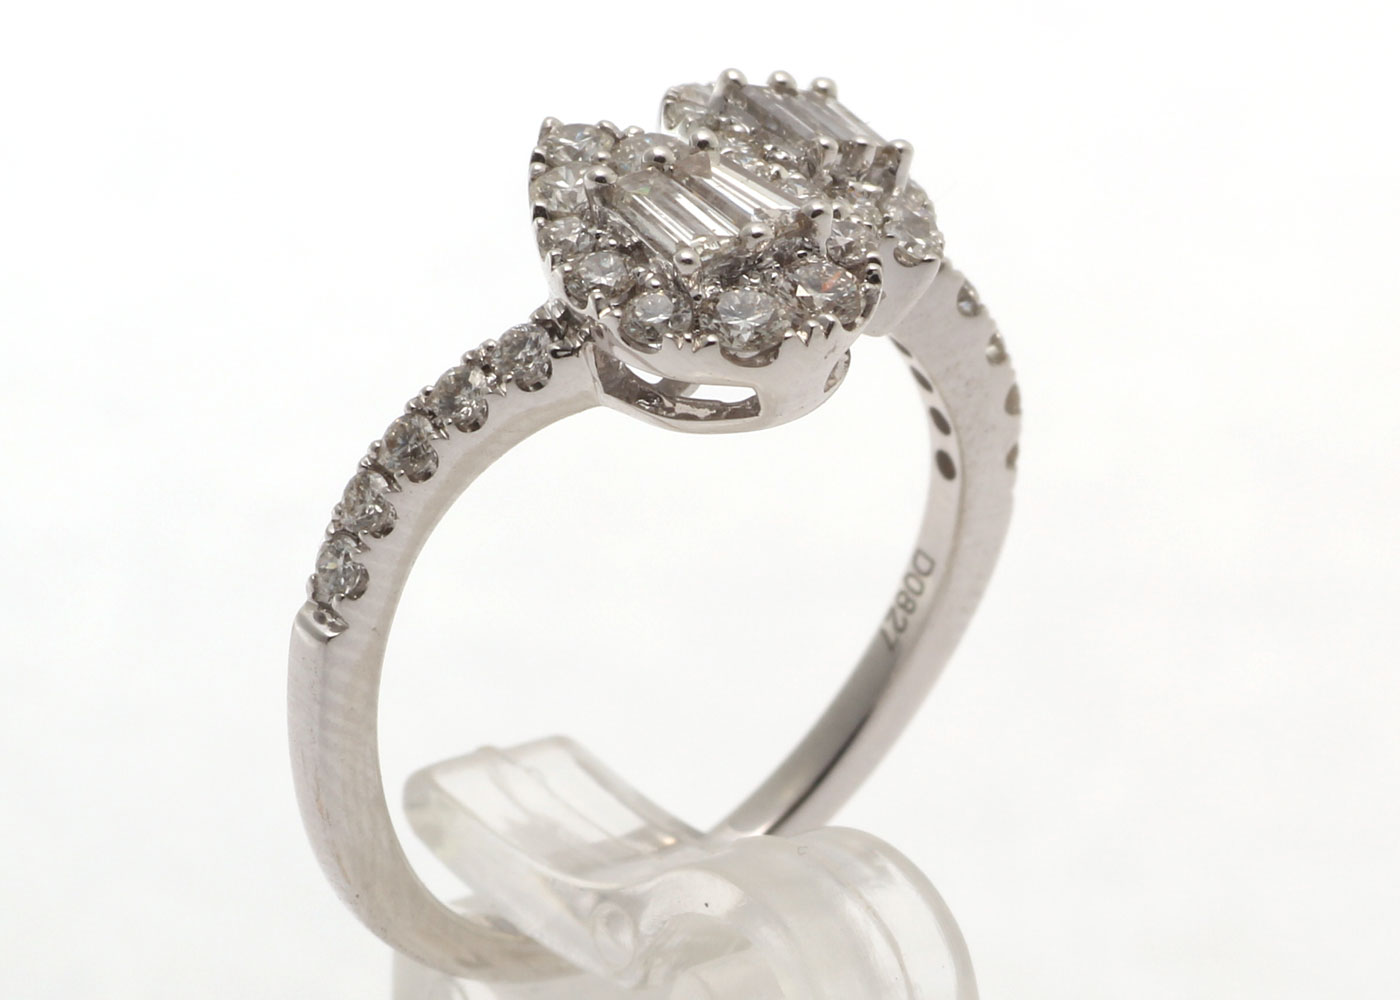 Lot 28 - 18ct White Gold Double Pear Shape Cluster Diamond Ring 0.83 Carats